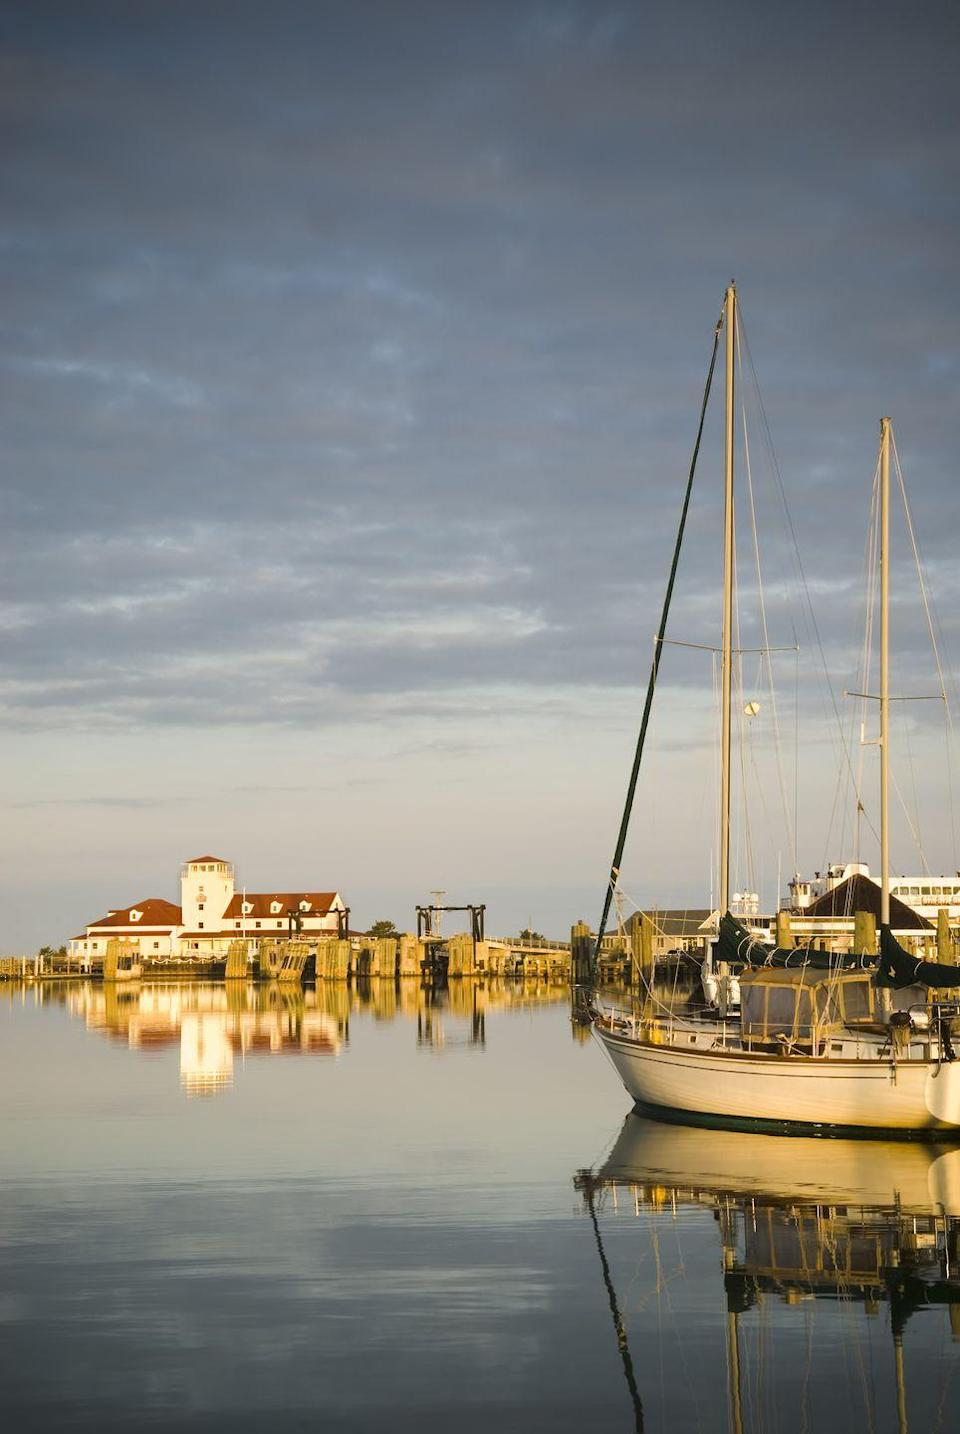 """<p>This slim island in North Carolina's Outer Banks is home to just under 1,000 people. Only accessible by boat or plane, much of the island is the undeveloped <a href=""""https://www.outerbanks.com/cape-hatteras-national-seashore.html"""" rel=""""nofollow noopener"""" target=""""_blank"""" data-ylk=""""slk:Cape Hatteras National Seashore"""" class=""""link rapid-noclick-resp"""">Cape Hatteras National Seashore</a>, where you can find <a href=""""https://www.outerbanks.com/ocracoke.html"""" rel=""""nofollow noopener"""" target=""""_blank"""" data-ylk=""""slk:wild ponies"""" class=""""link rapid-noclick-resp"""">wild ponies</a> (believed to be descendants of Spanish Mustangs) roaming. You can explore the island on foot, bike, or horseback, then head back to the village for a meal at a laid-back waterfront restaurant. Since the population is so small, it's kind of like Cheers: Everyone knows your name.</p>"""